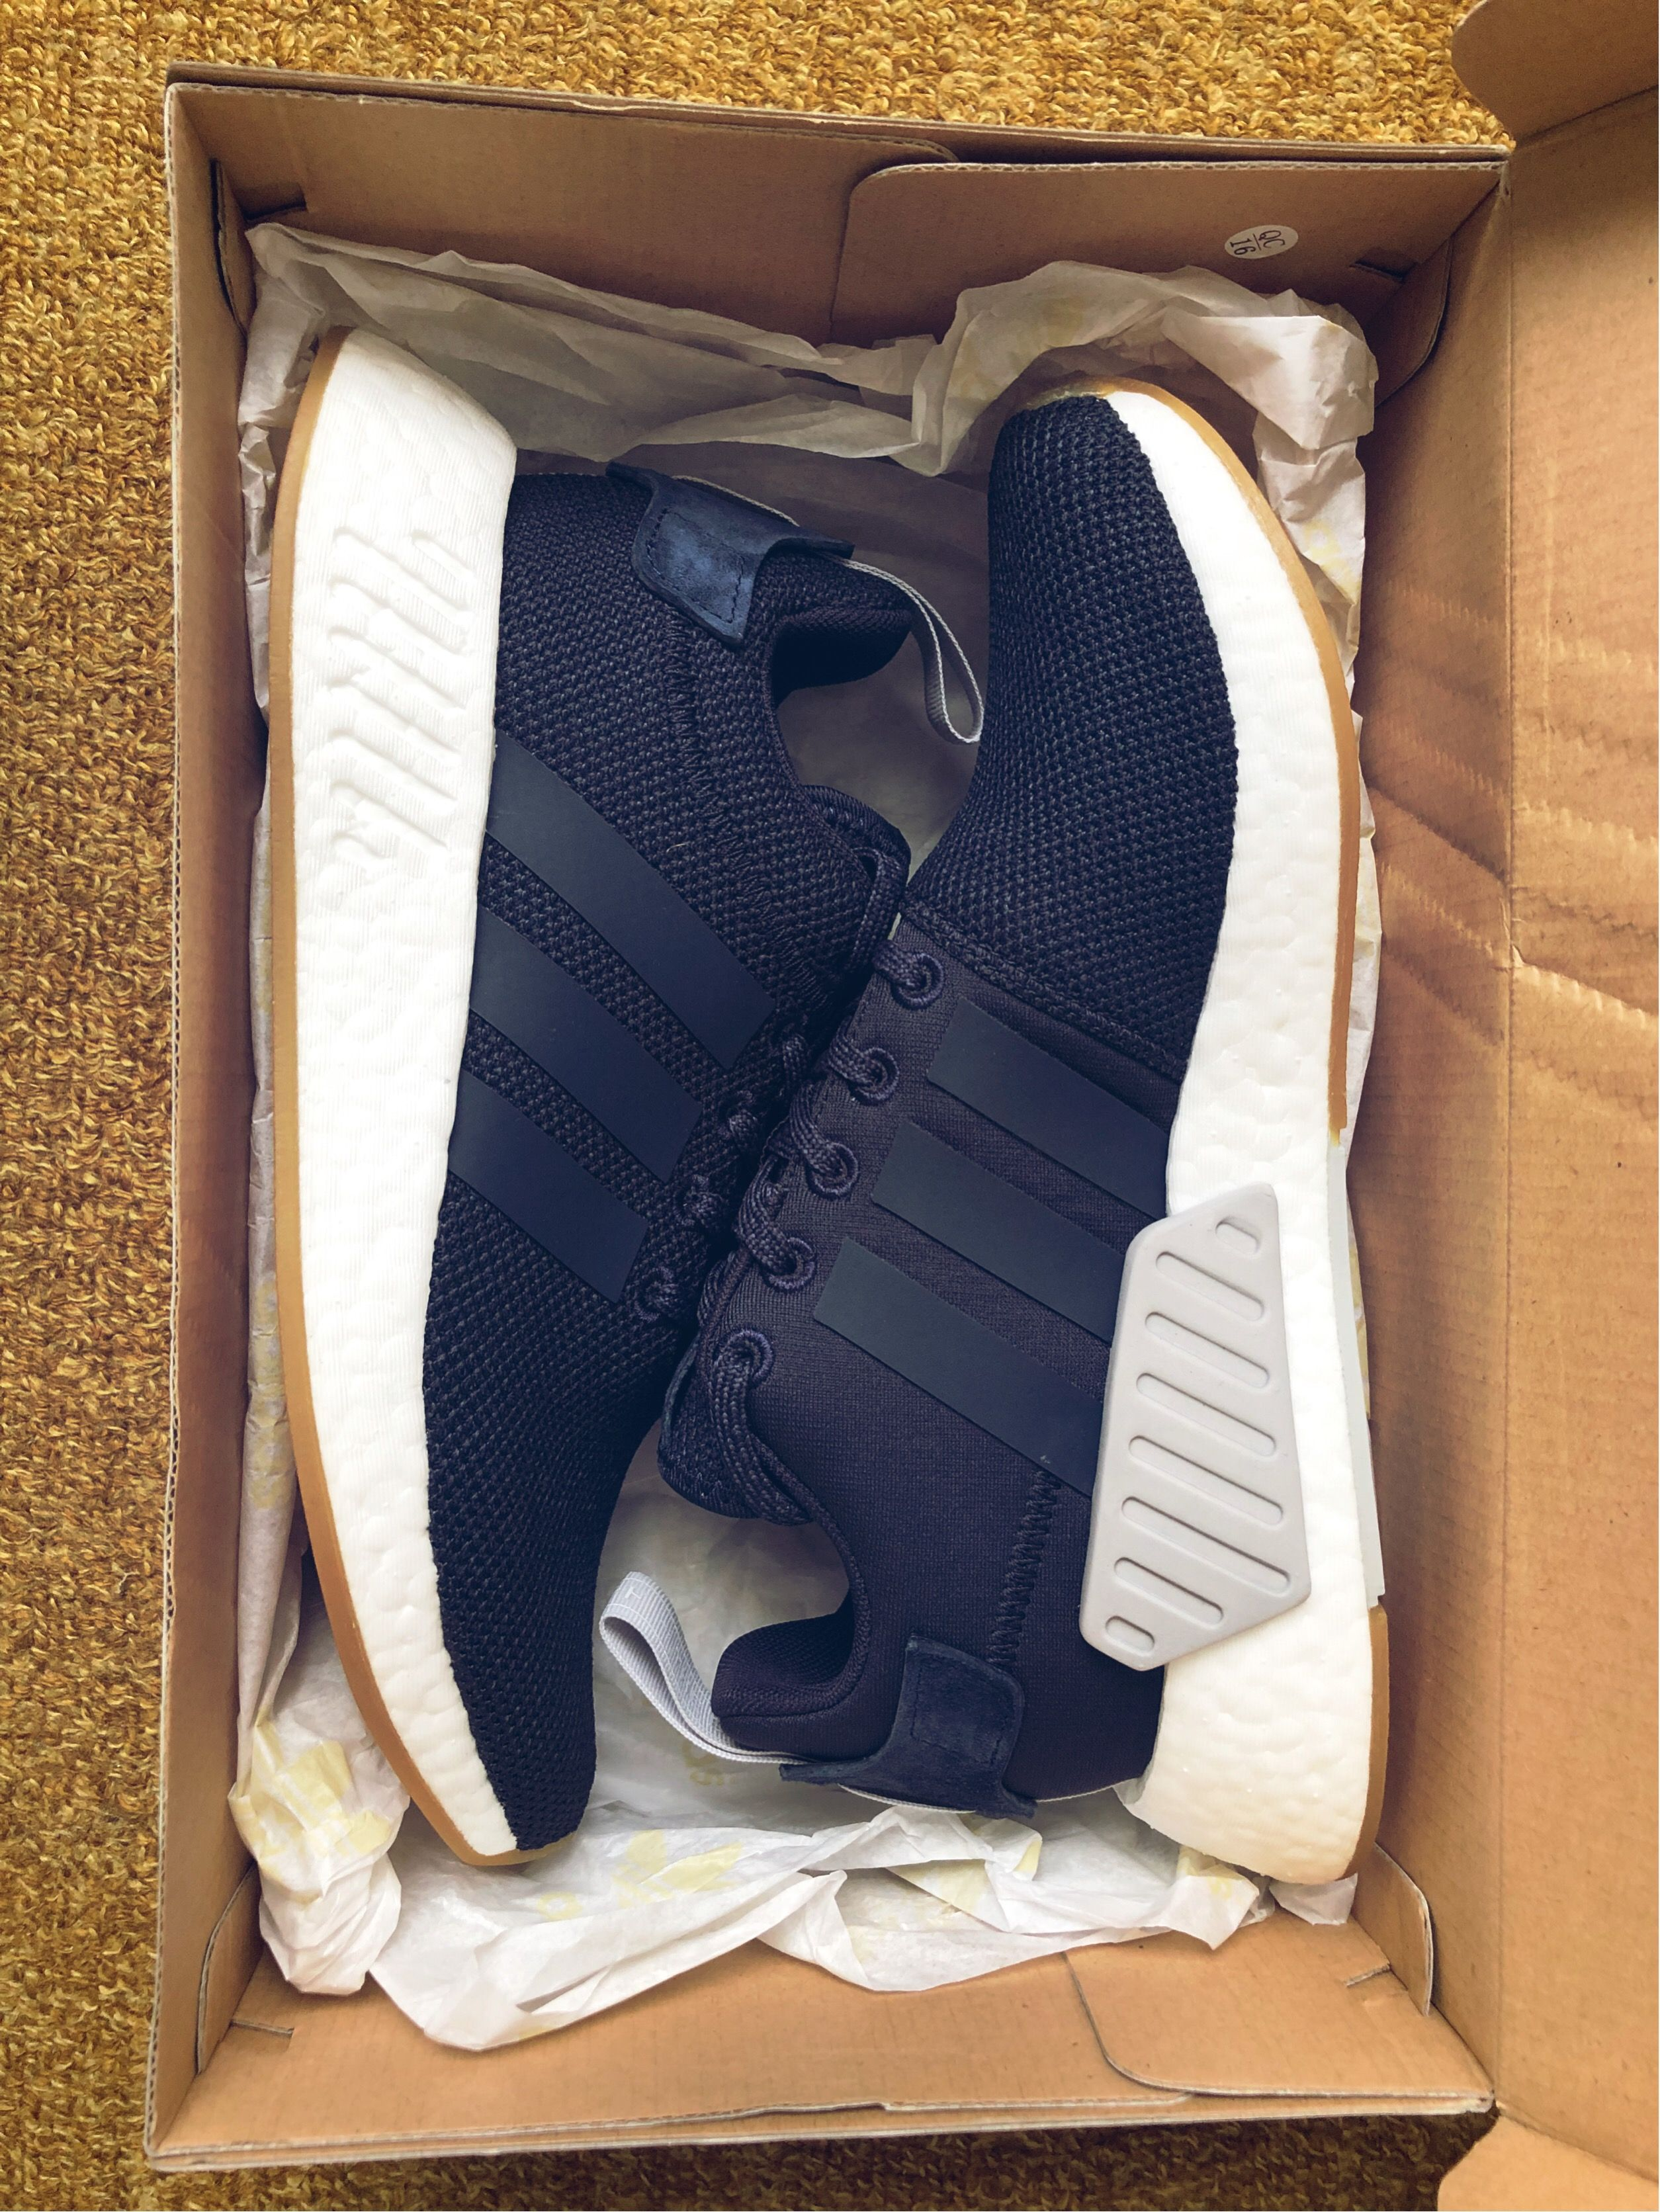 separation shoes 60201 7bafc Adidas NMD R2 Navy Boost sneakers | Shoes | Kicks shoes, Sneakers ...